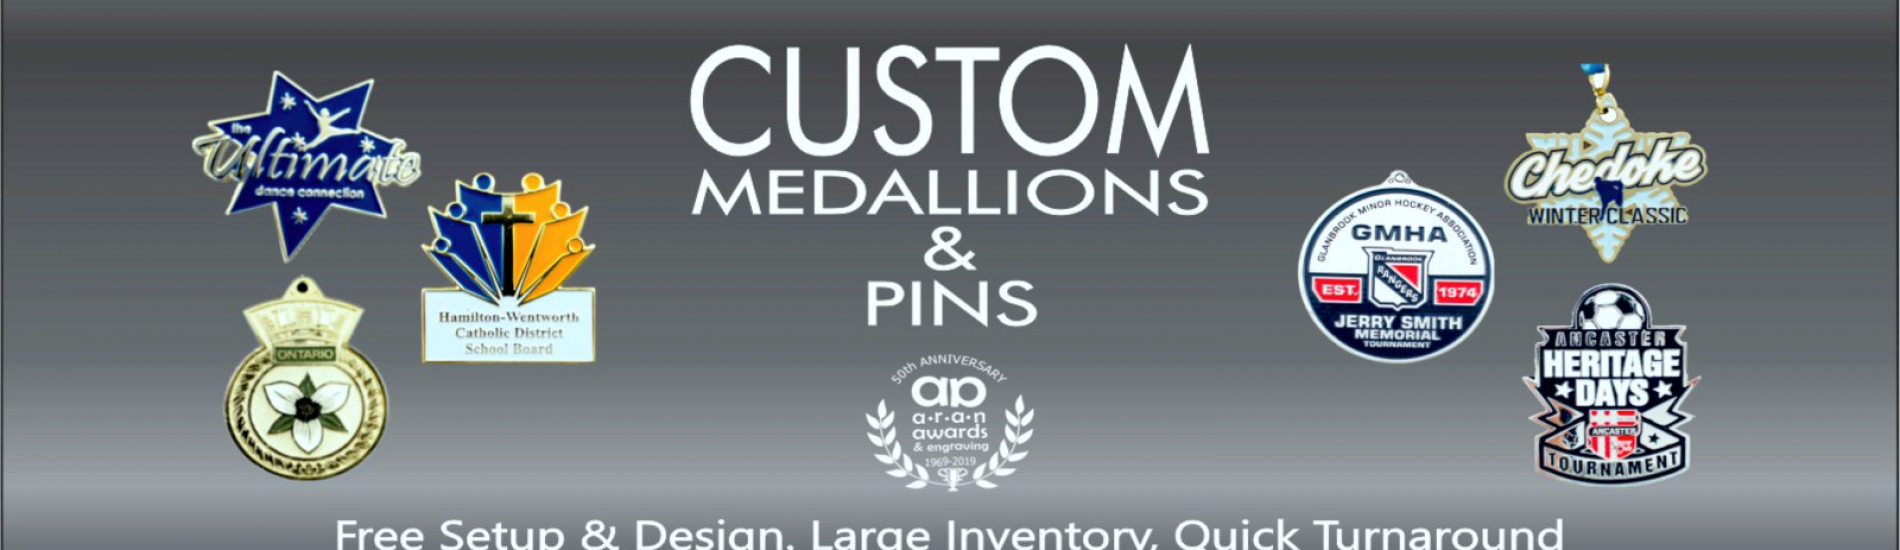 banner image with custom medals and lapel pins on black background